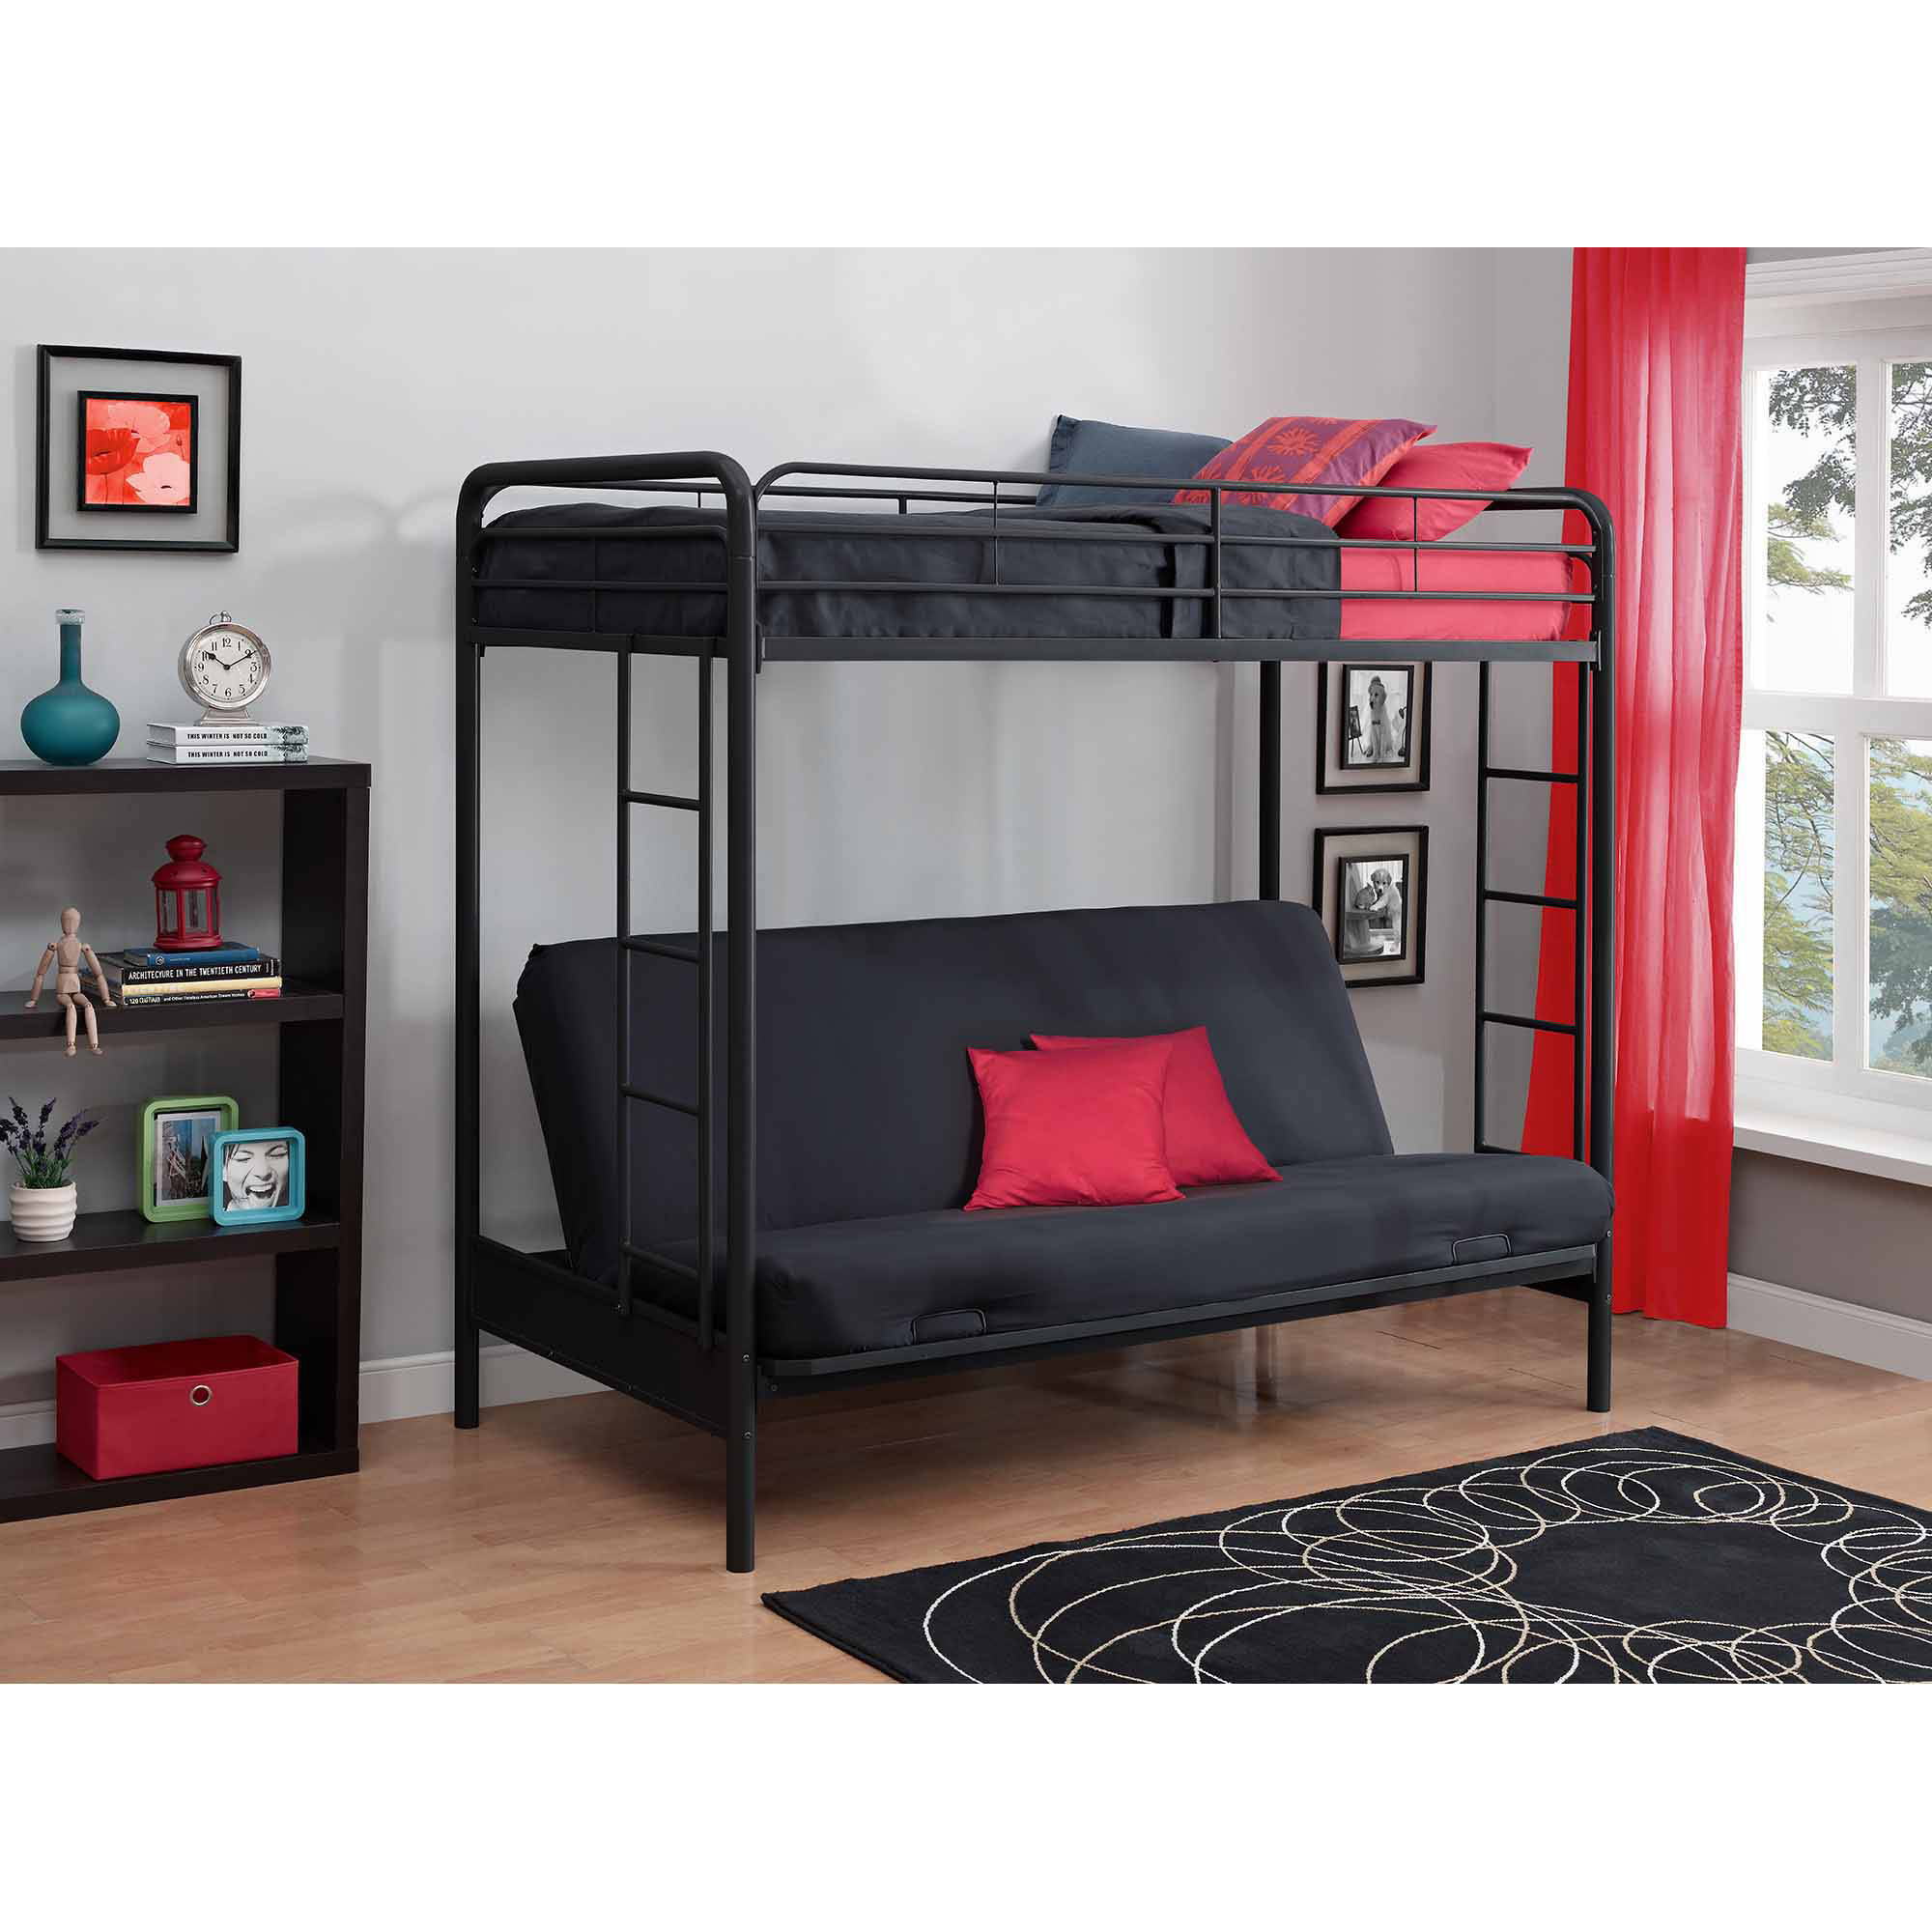 dhp twin over futon metal bunk bed, multiple colors - walmart